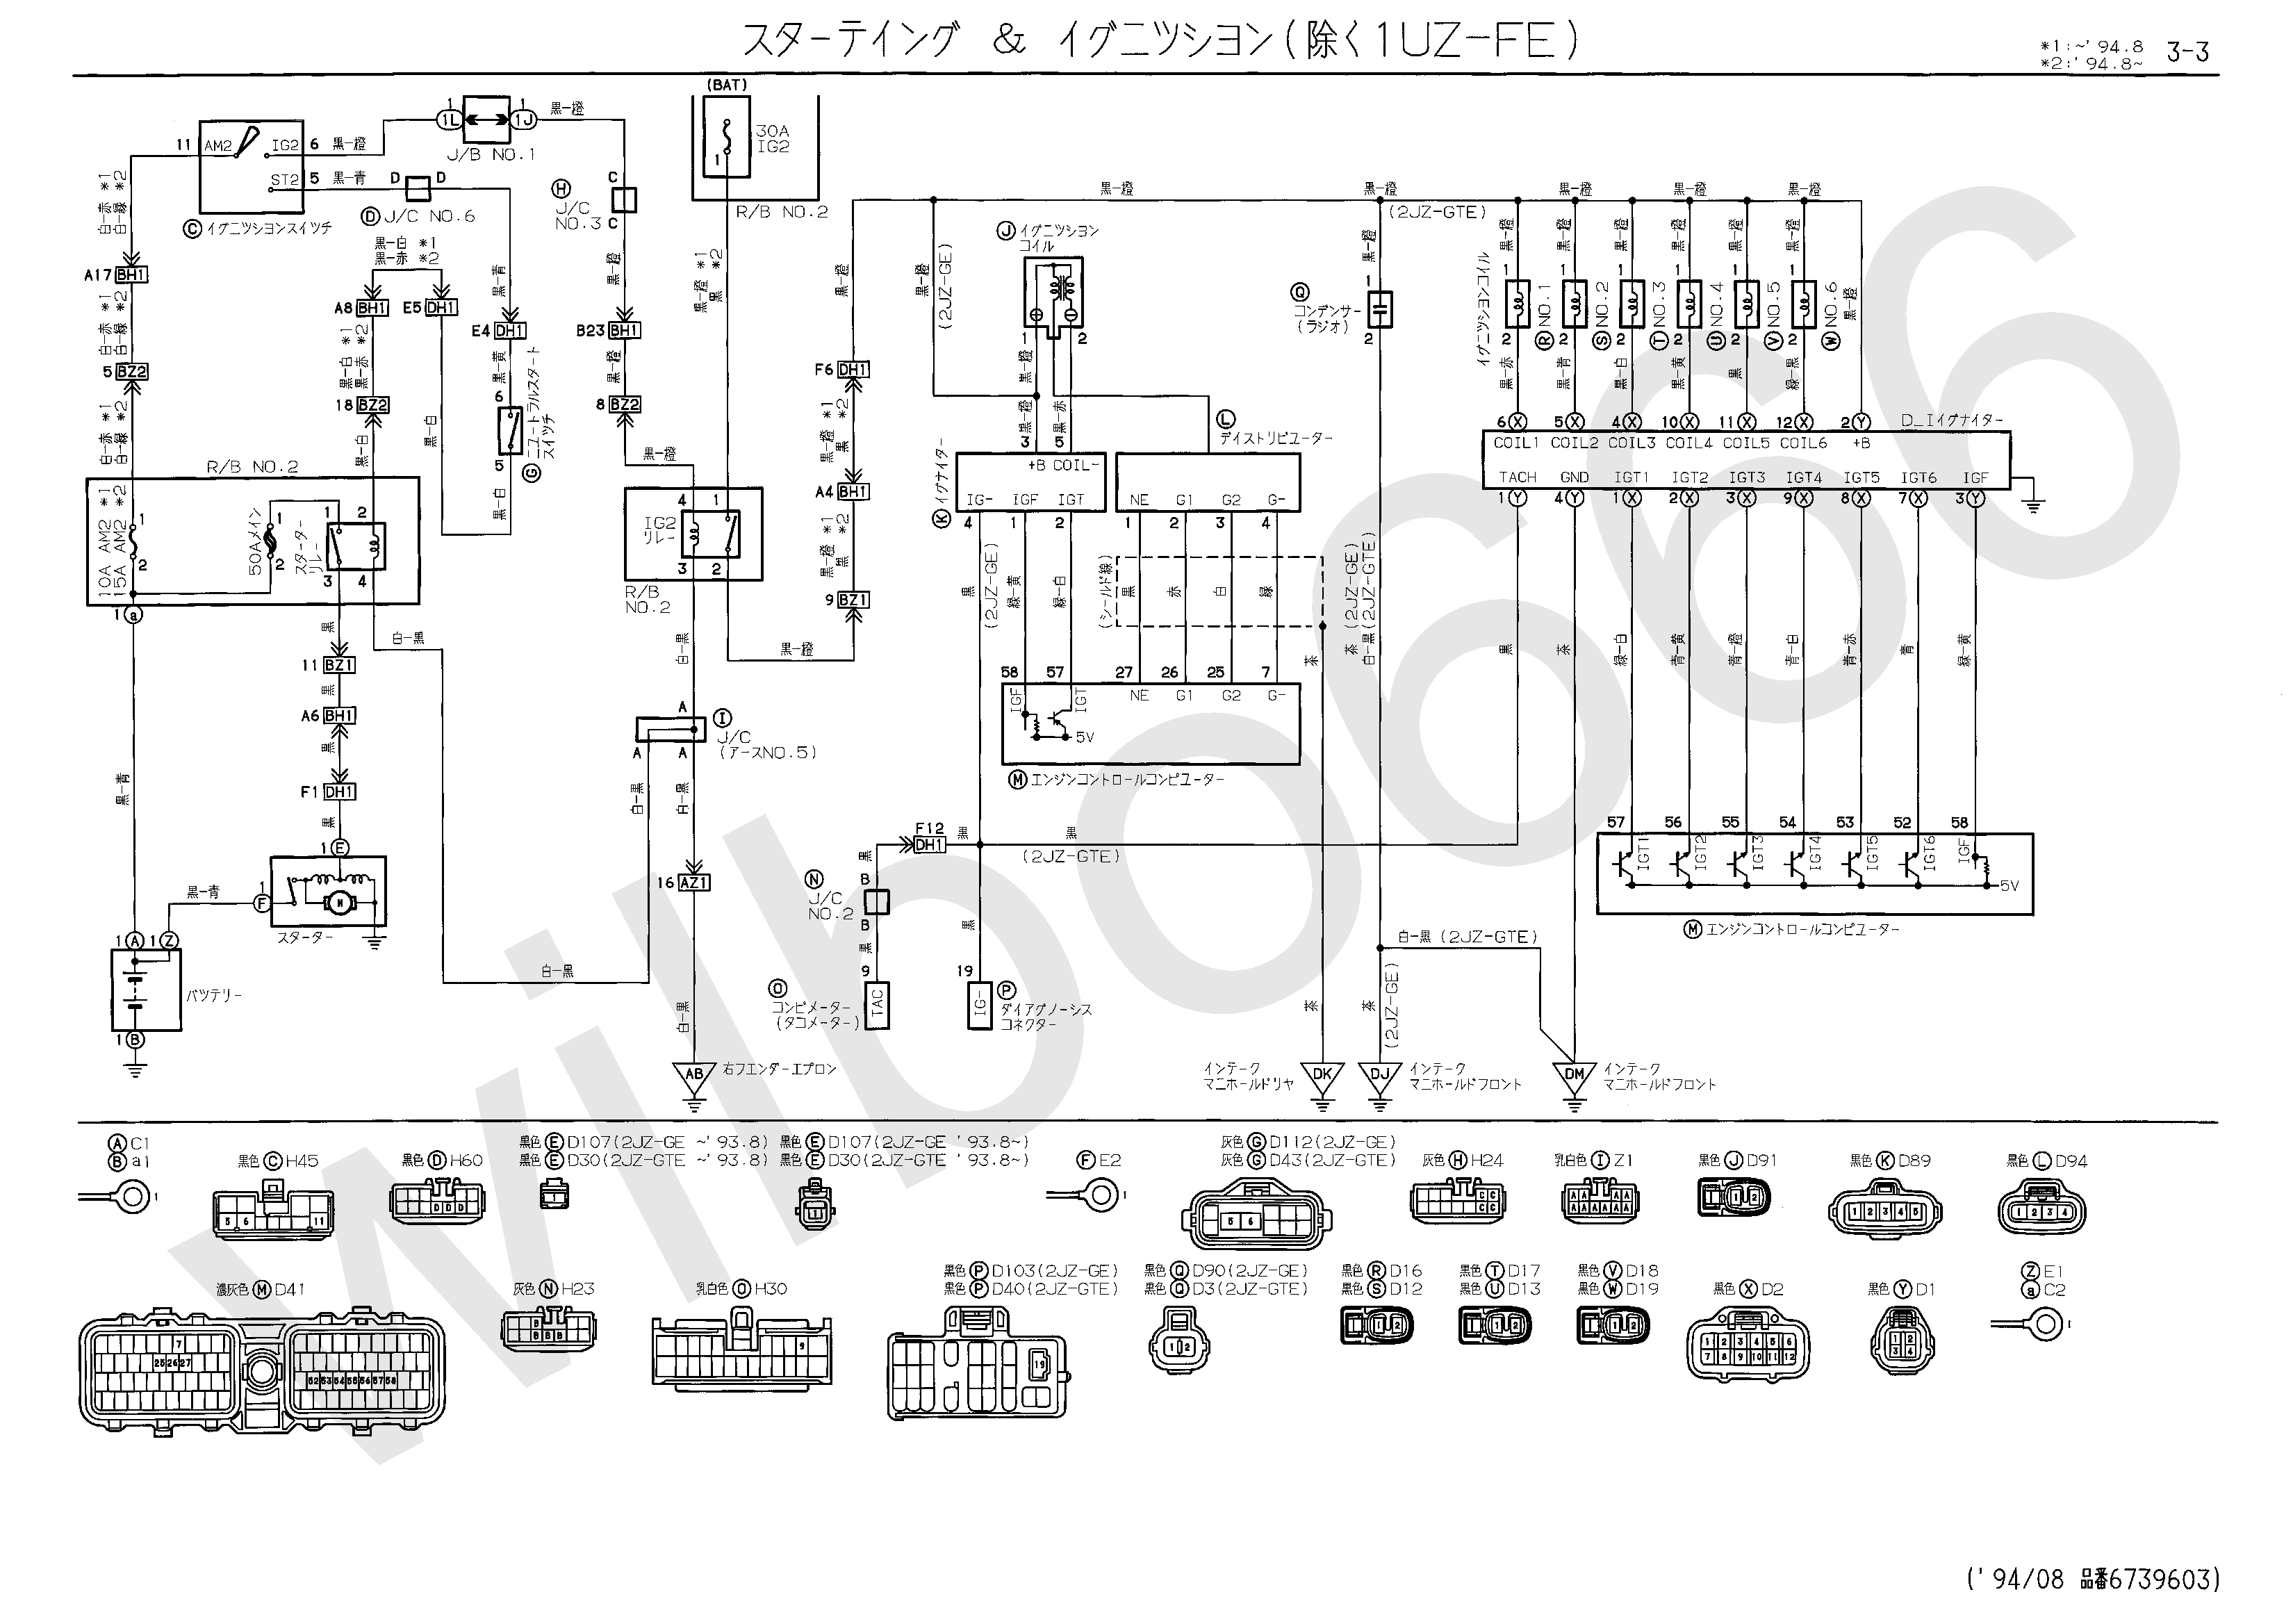 JZS14%23%2C UZS14%23 Electrical Wiring Diagram 6739604 3 3?resize\\\\\\\\\\\\\\\\\\\\\\\\\\\\\\\\\\\\\\\\\\\\\\\\\\\\\\\\\\\\\\\\\\\\\\\\\\\\\\\\\\\\\\\\\\\\\\\\\\\\\\\\\\\\\\\\\=665%2C471 awesome towbar wiring diagram 7 pin photos images for image wire nissan qashqai towbar wiring diagram at mifinder.co